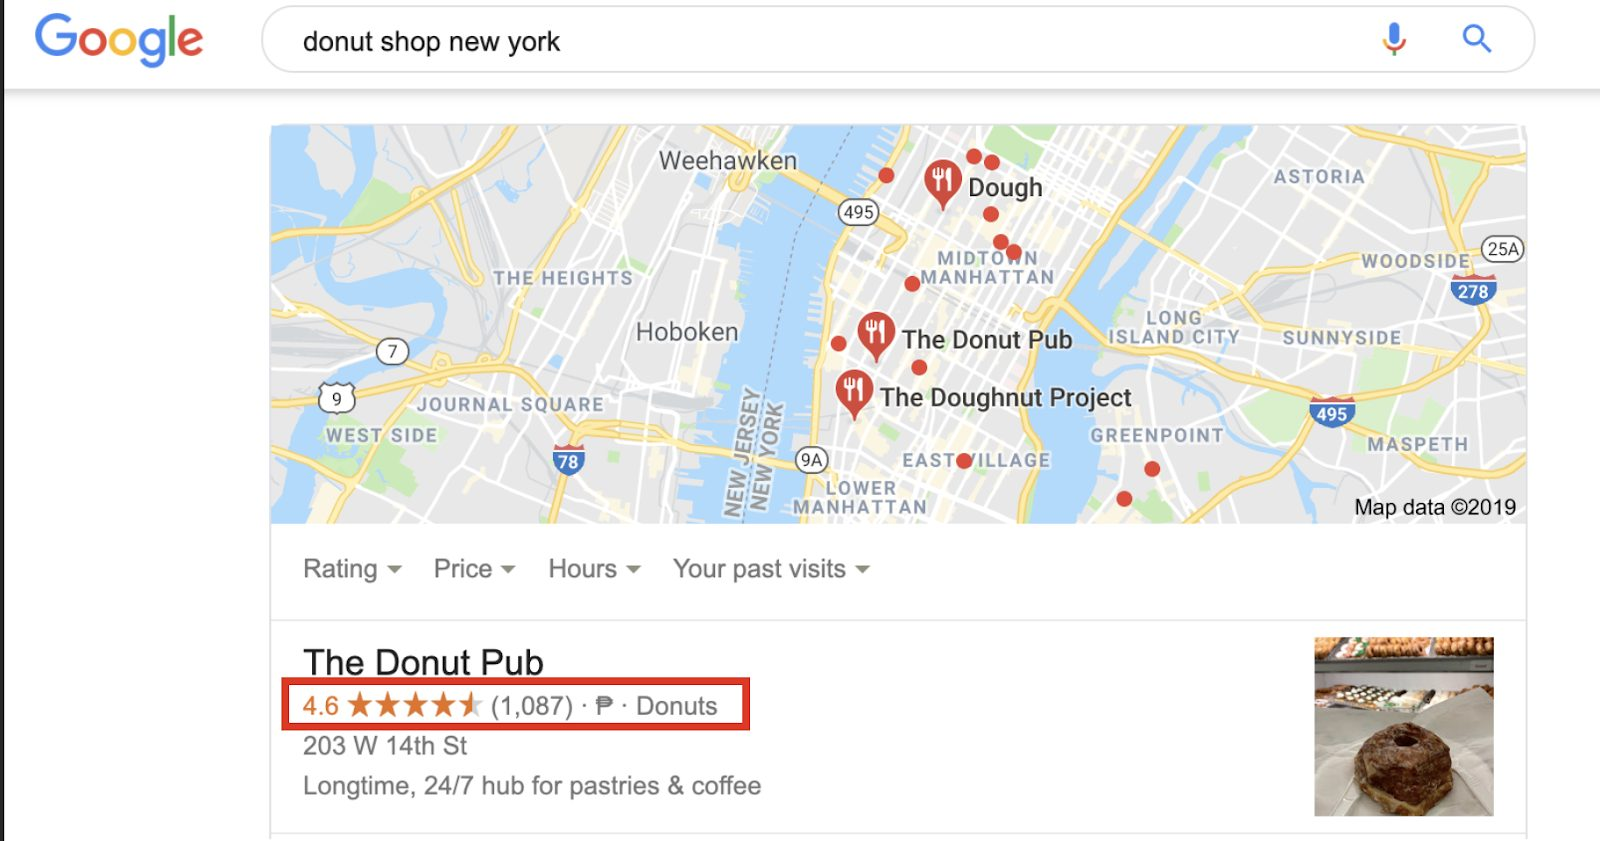 Donut shop new york query in Google search